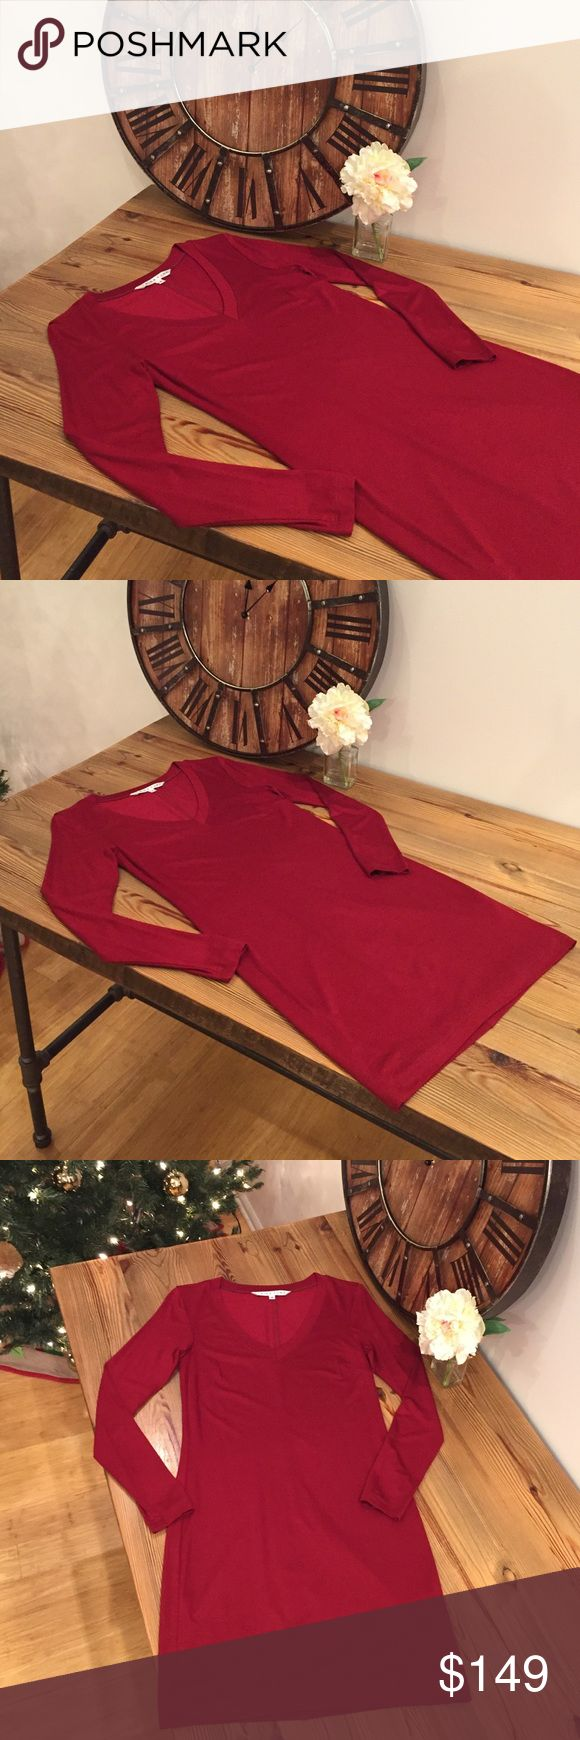 Trina Turk Dark Red Long Sleeve Dress Perfect condition! Crisp and clean hem lines, double layered (not even a little see through) long sleeve mini dress. T-shirt style, but the material is thick and high quality, so a bit dressier. Never worn. New without tags :) size P is equal to an xs. Trina Turk Dresses